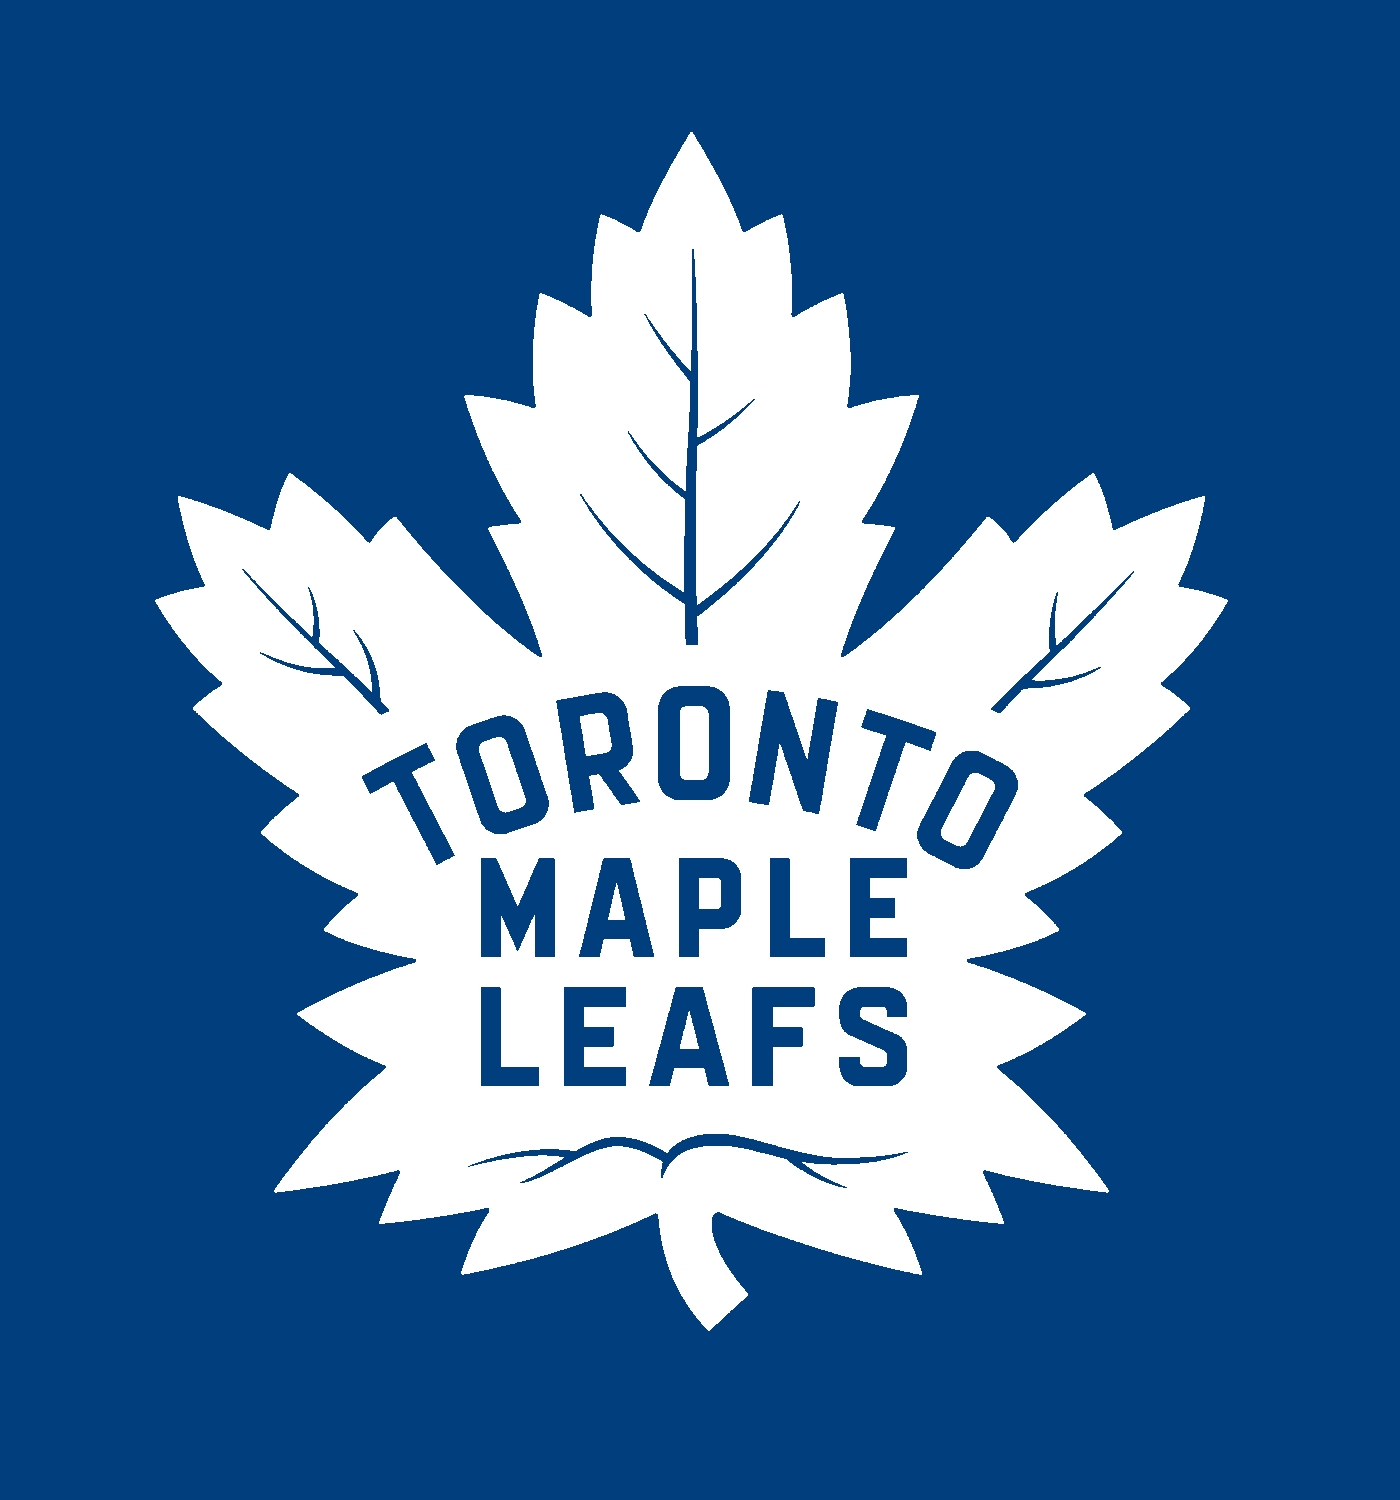 Toronto Maple Leafs Logos Download